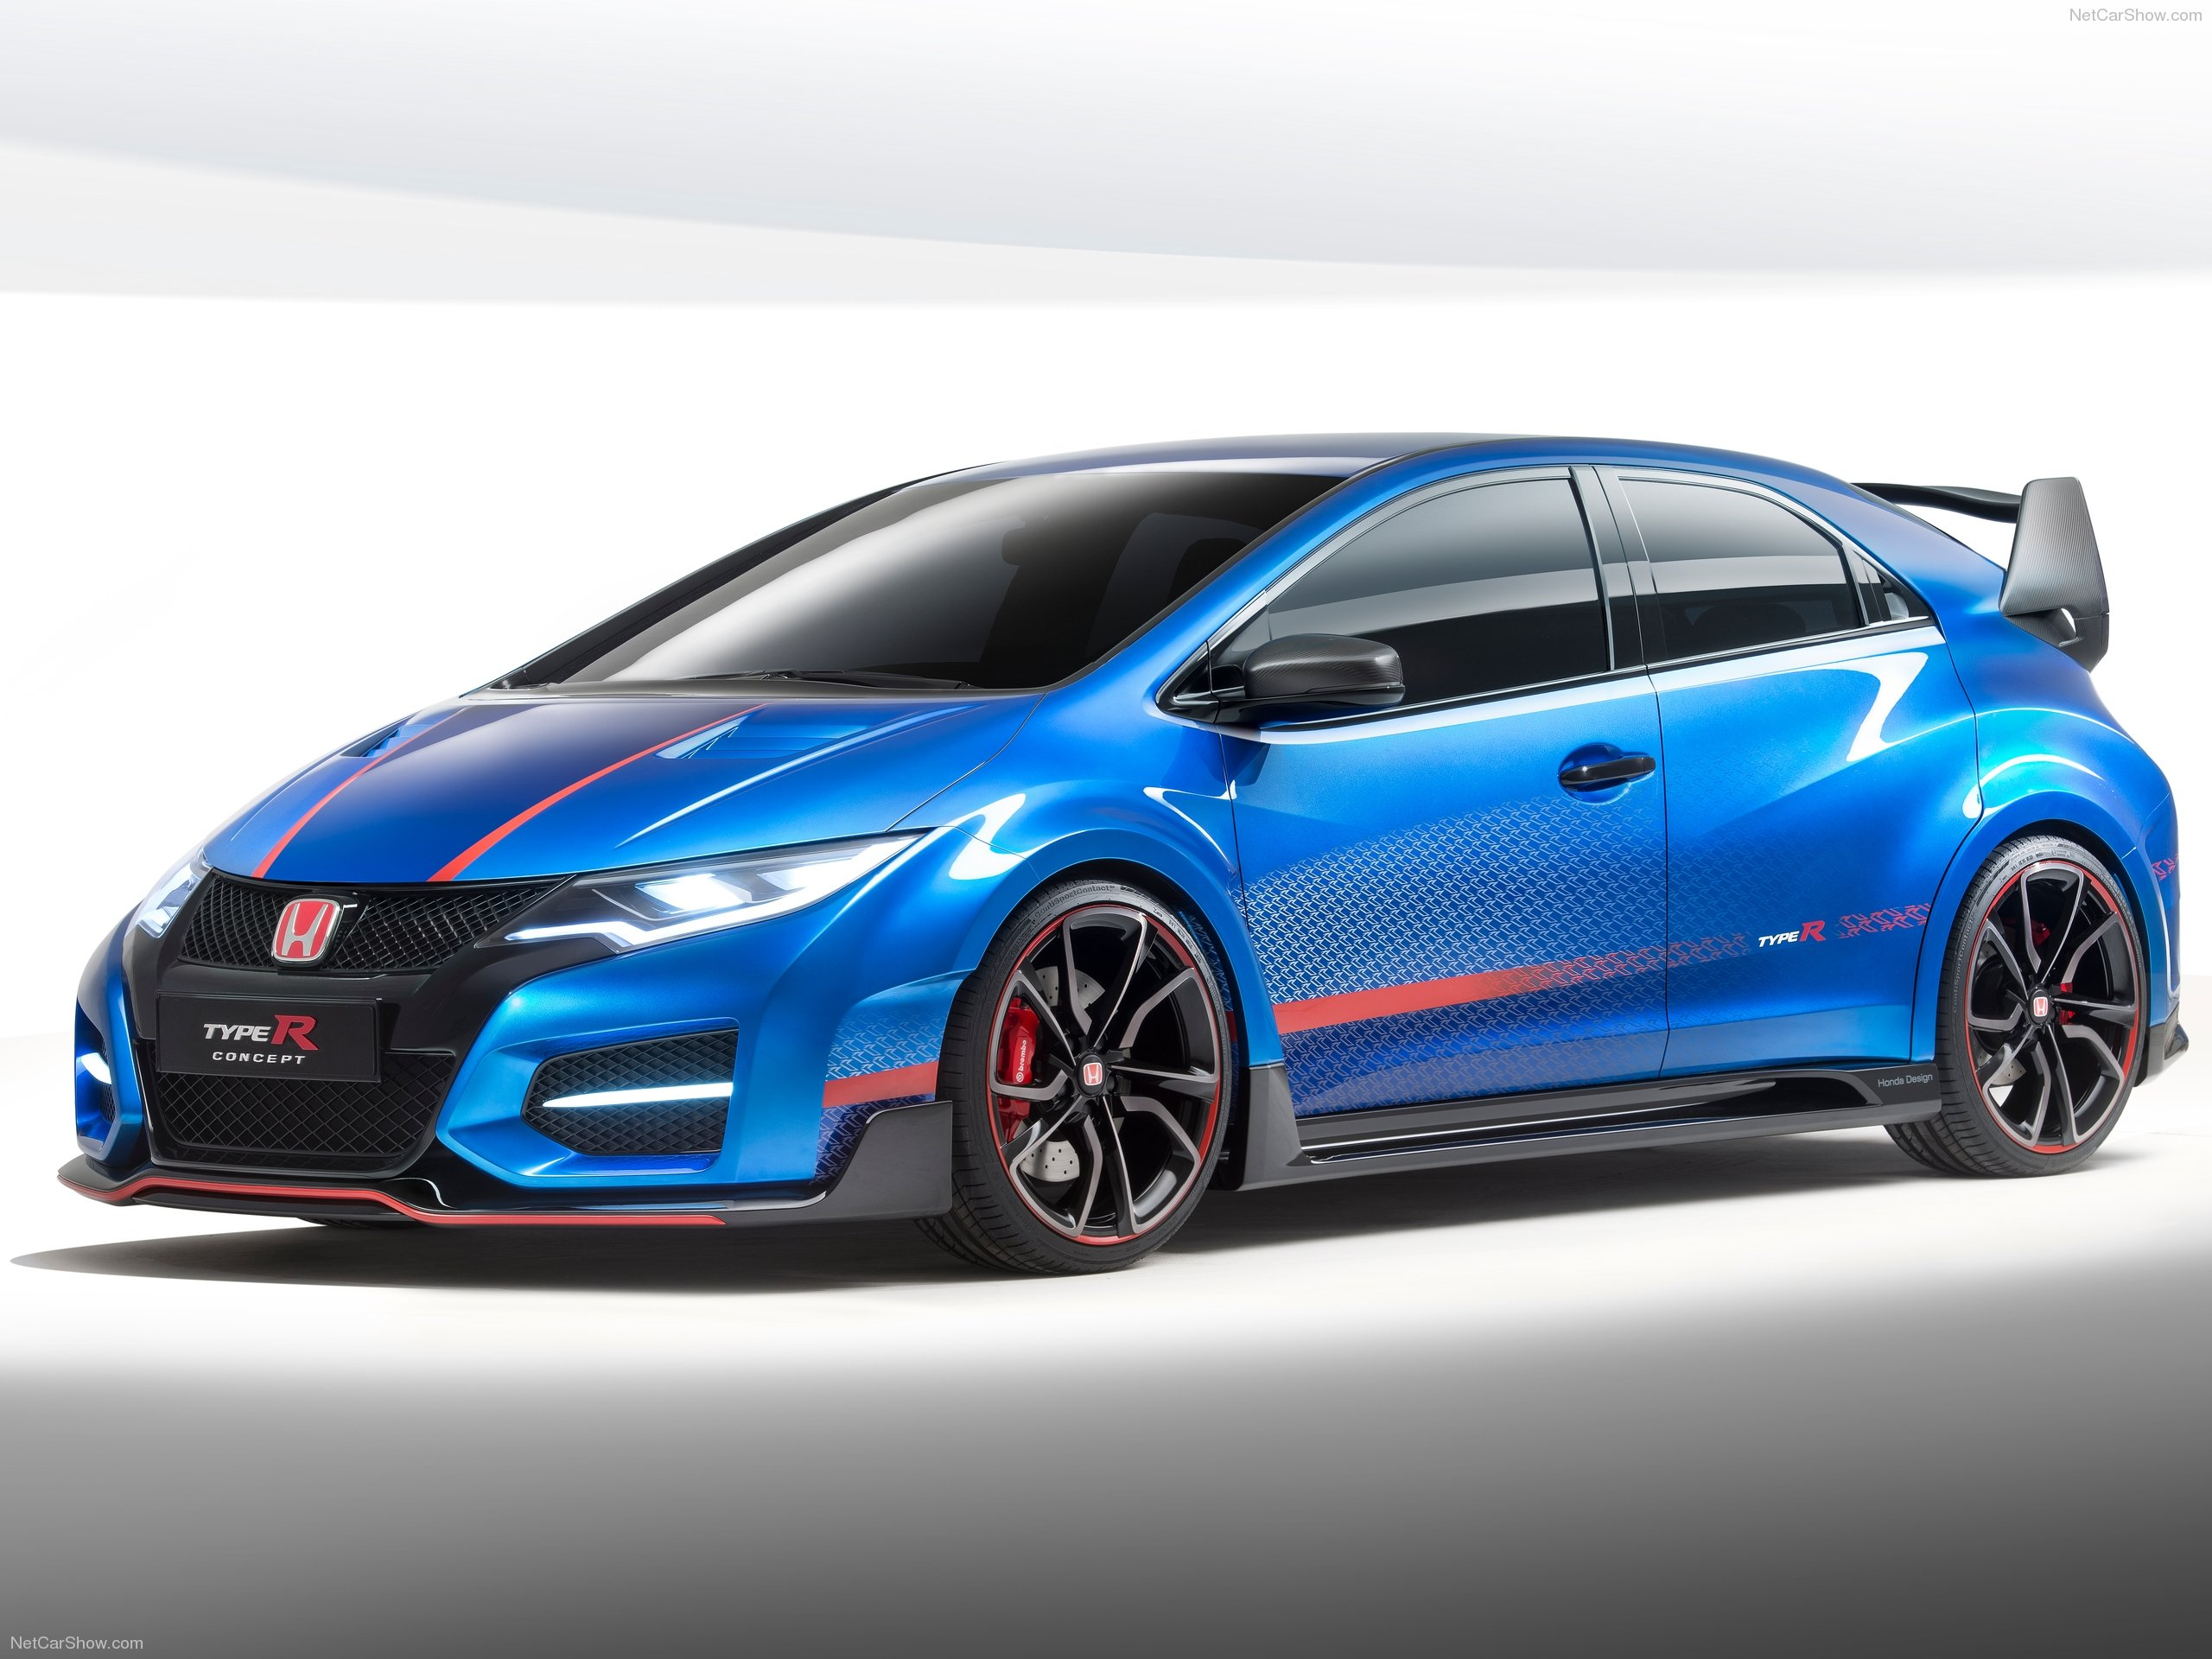 2015 honda civic type r automatic | New Automotive Cars Wallpaper HD